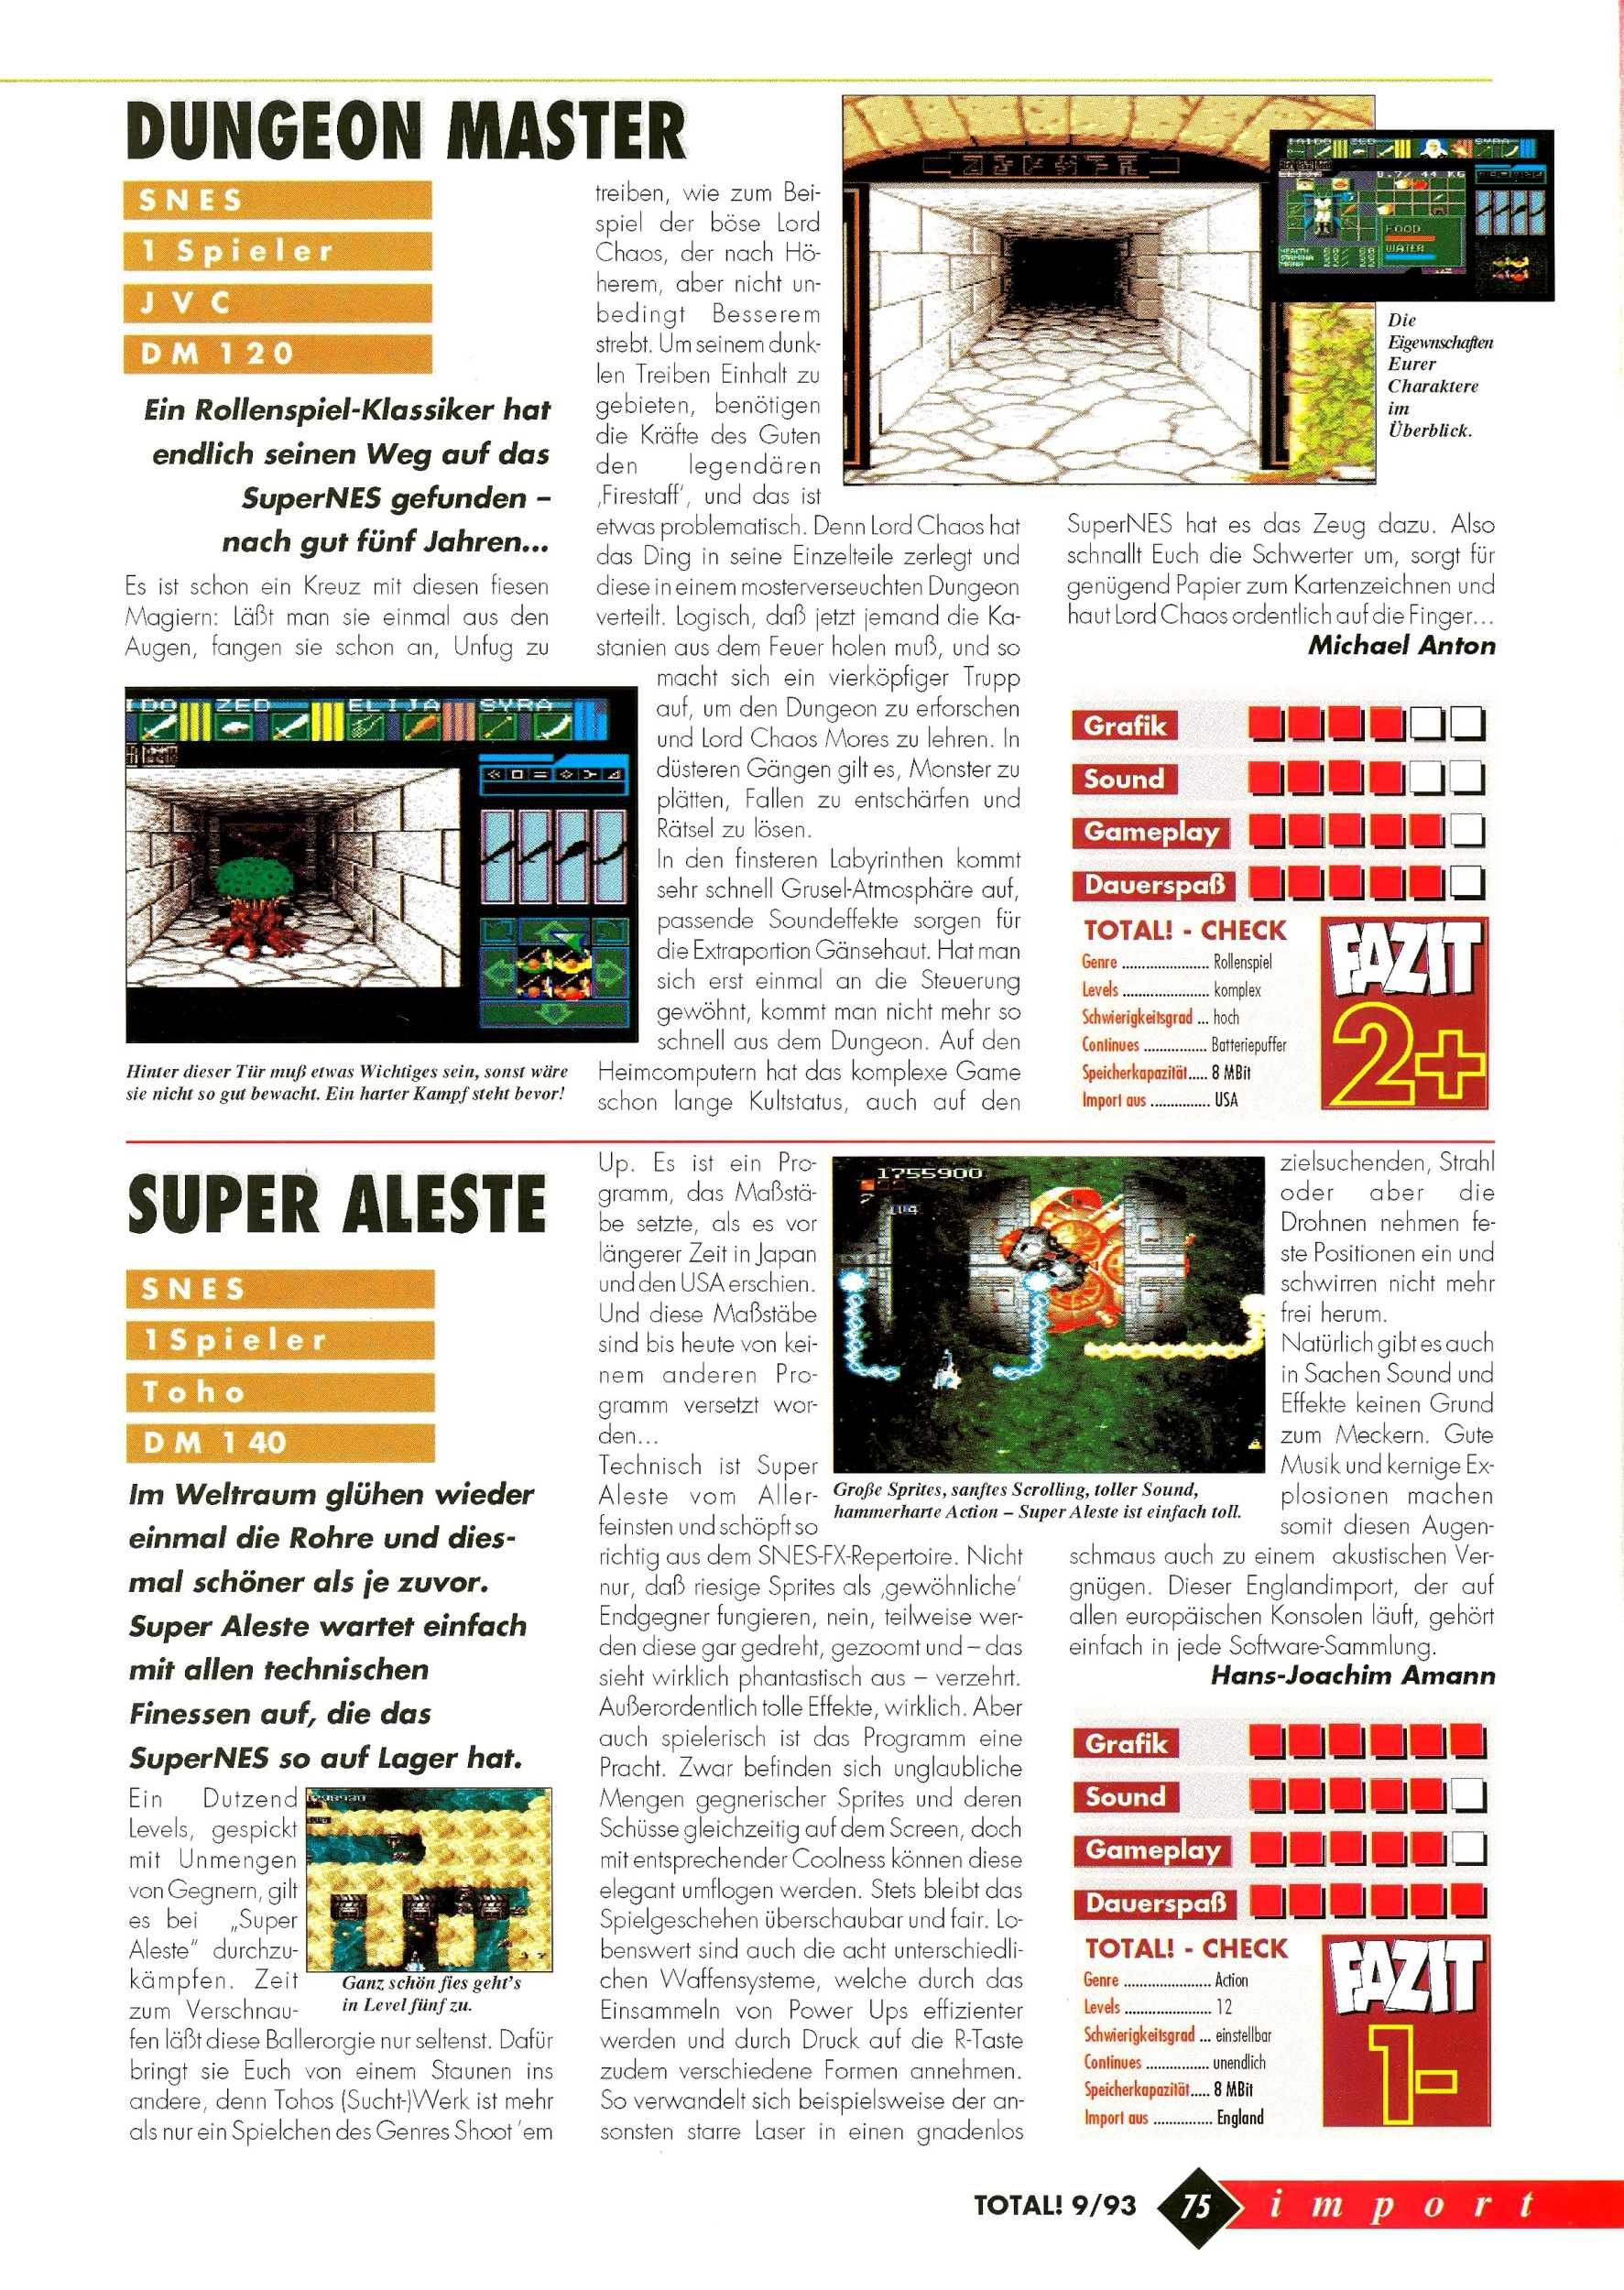 Dungeon Master for Super NES Review published in German magazine 'Total!', October 1993, Page 75